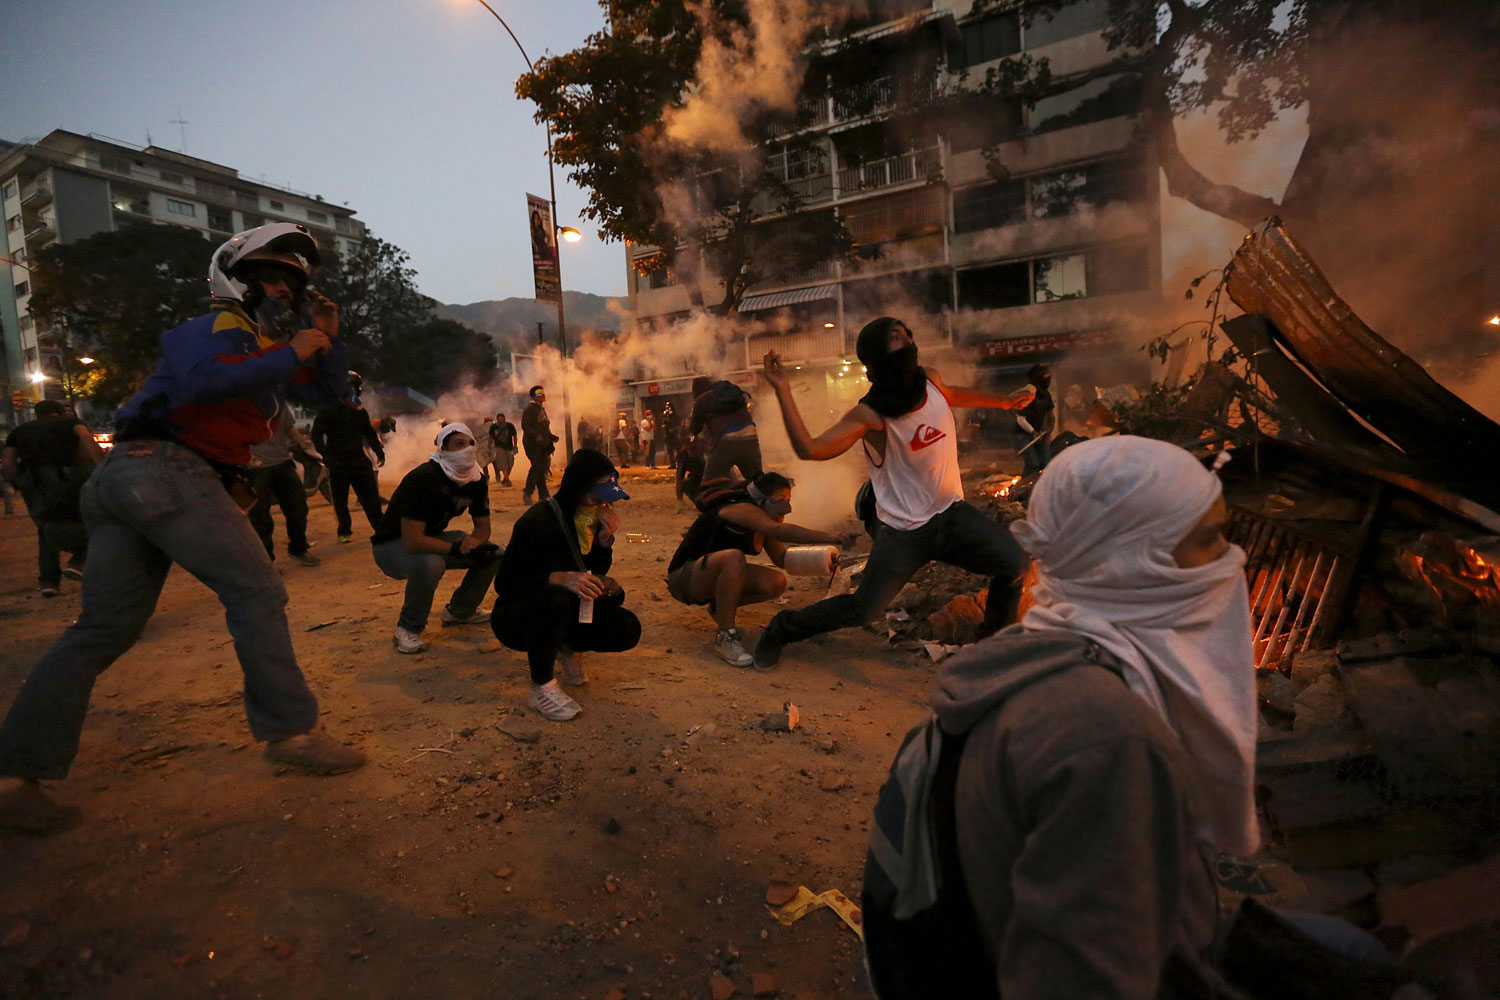 Masked demonstrators throw stones at Bolivarian National Police during clashes in Caracas, March 3, 2014.